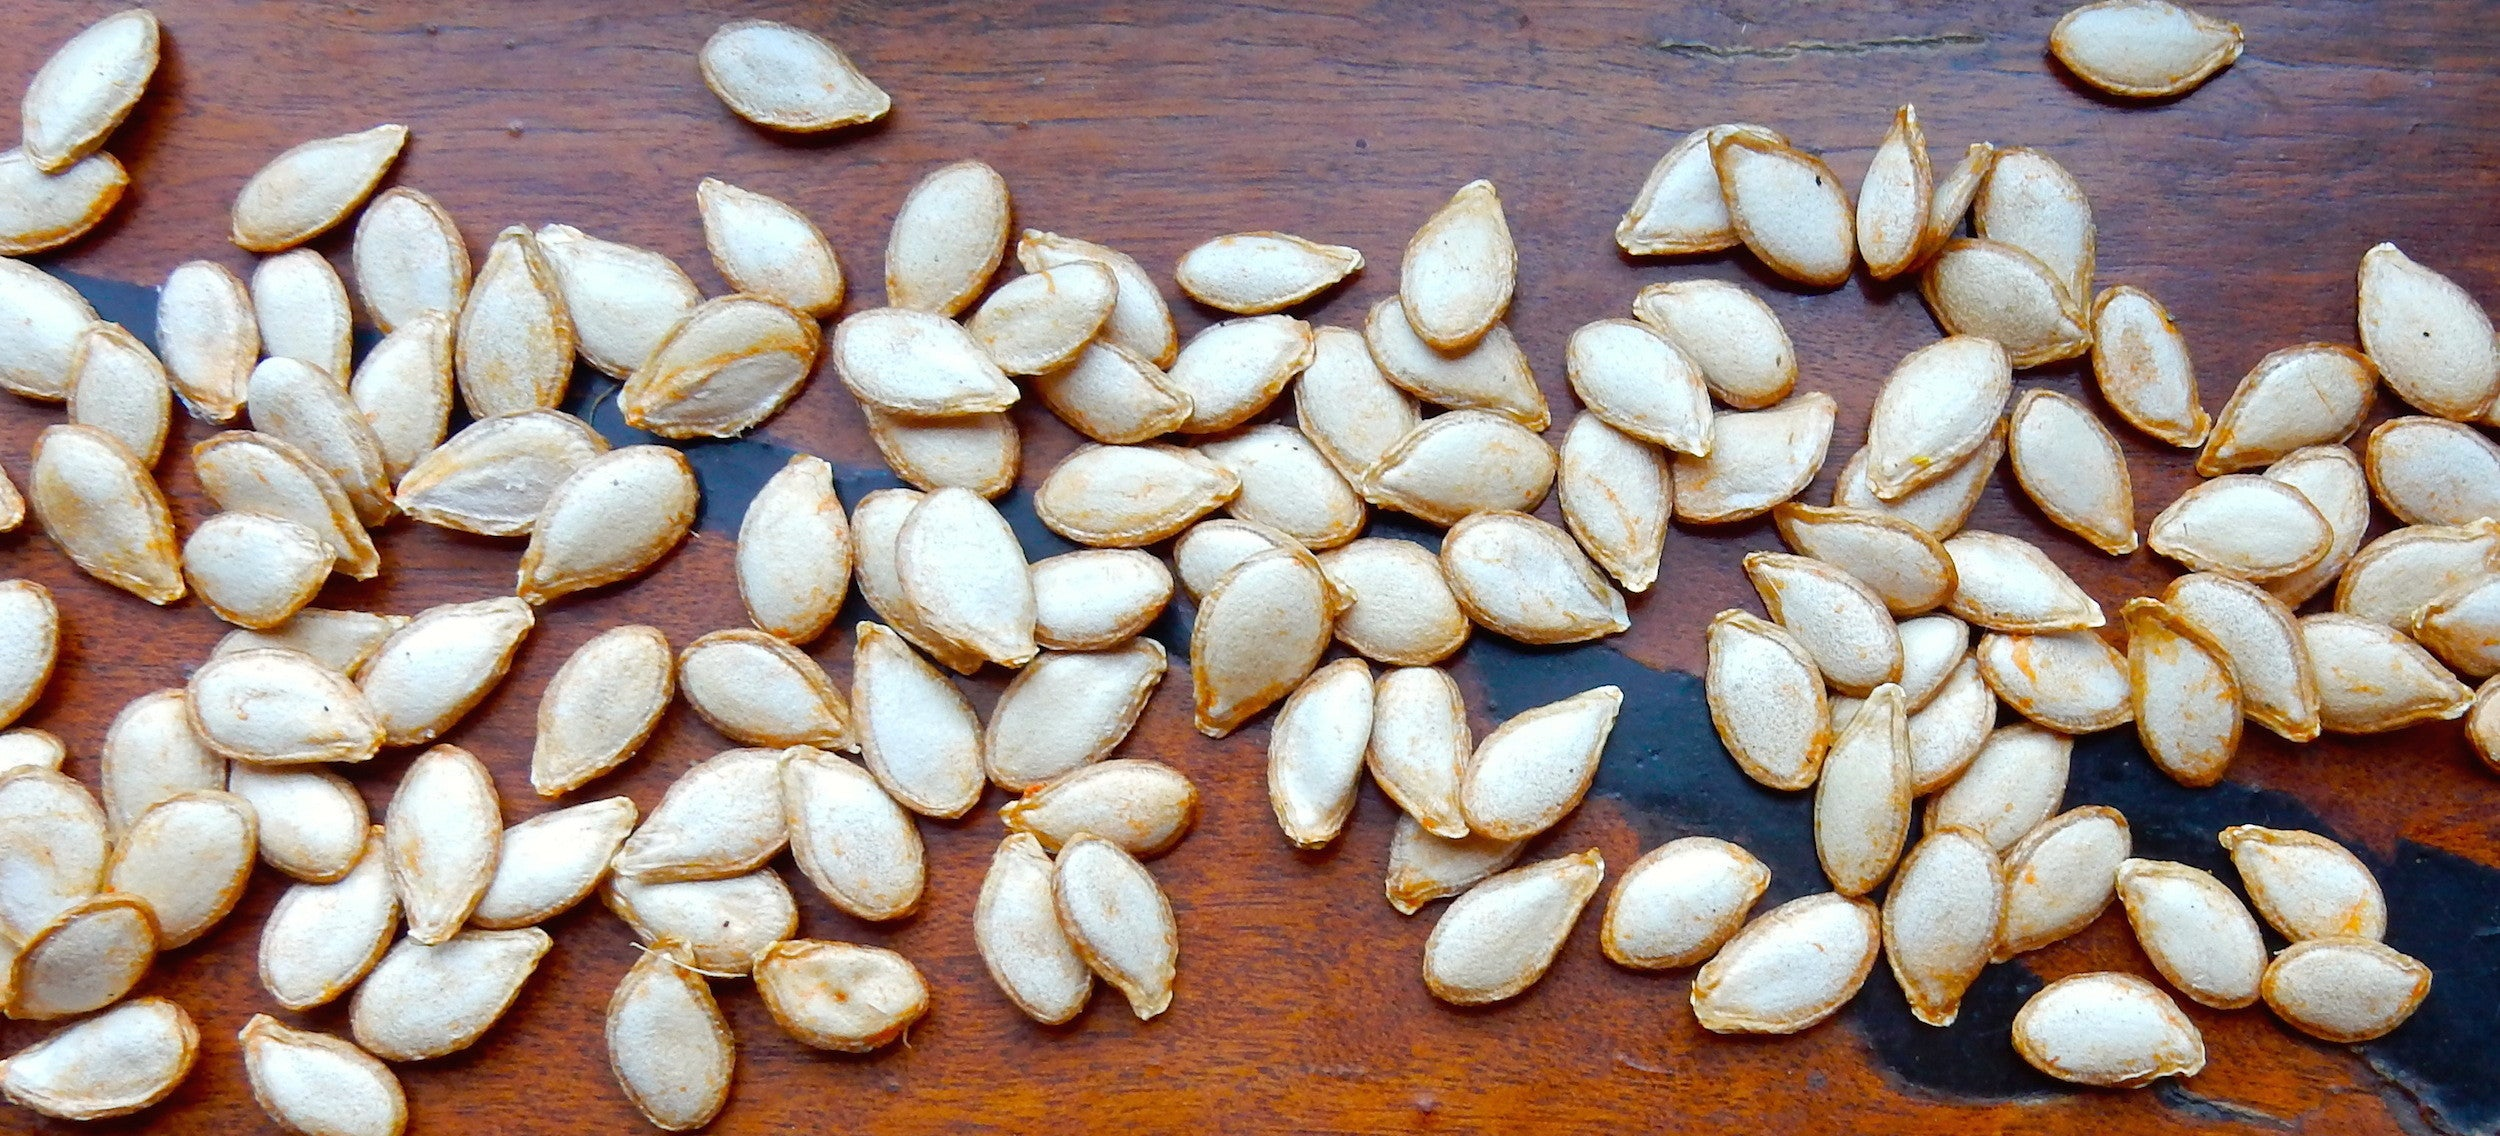 Pumpkin seeds from the Ecolosophy patch